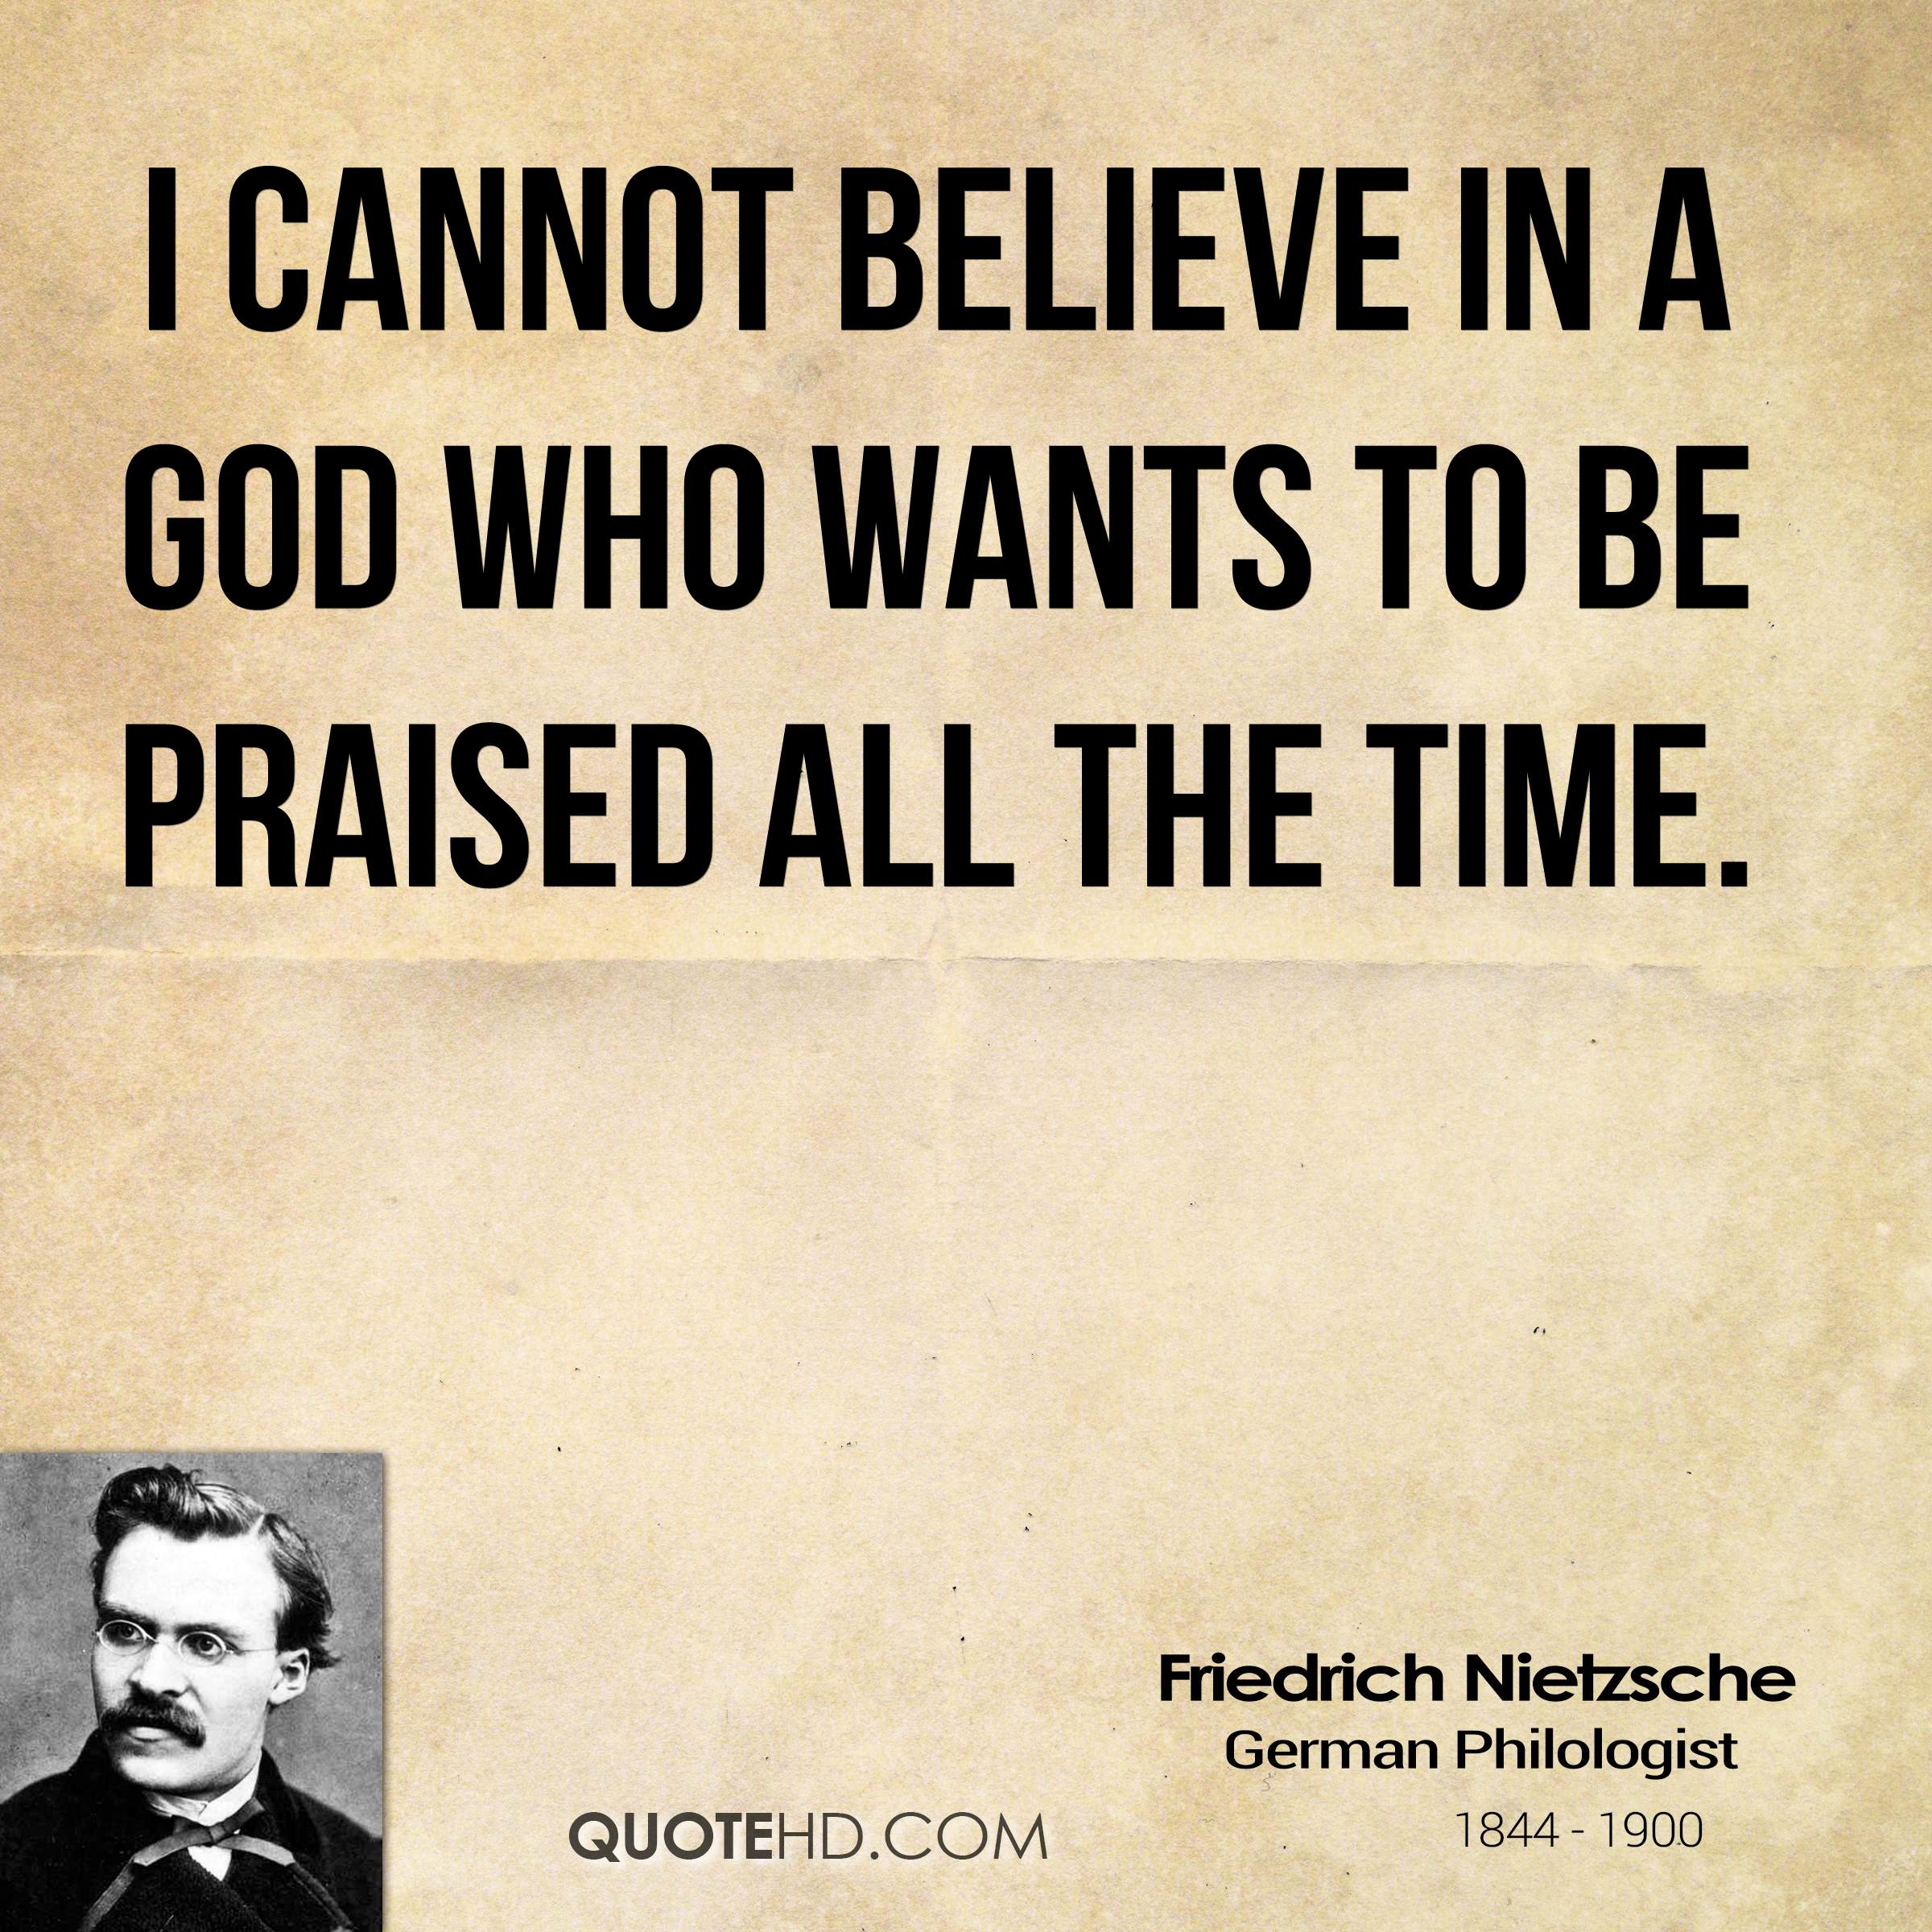 I cannot believe in a God who wants to be praised all the time.